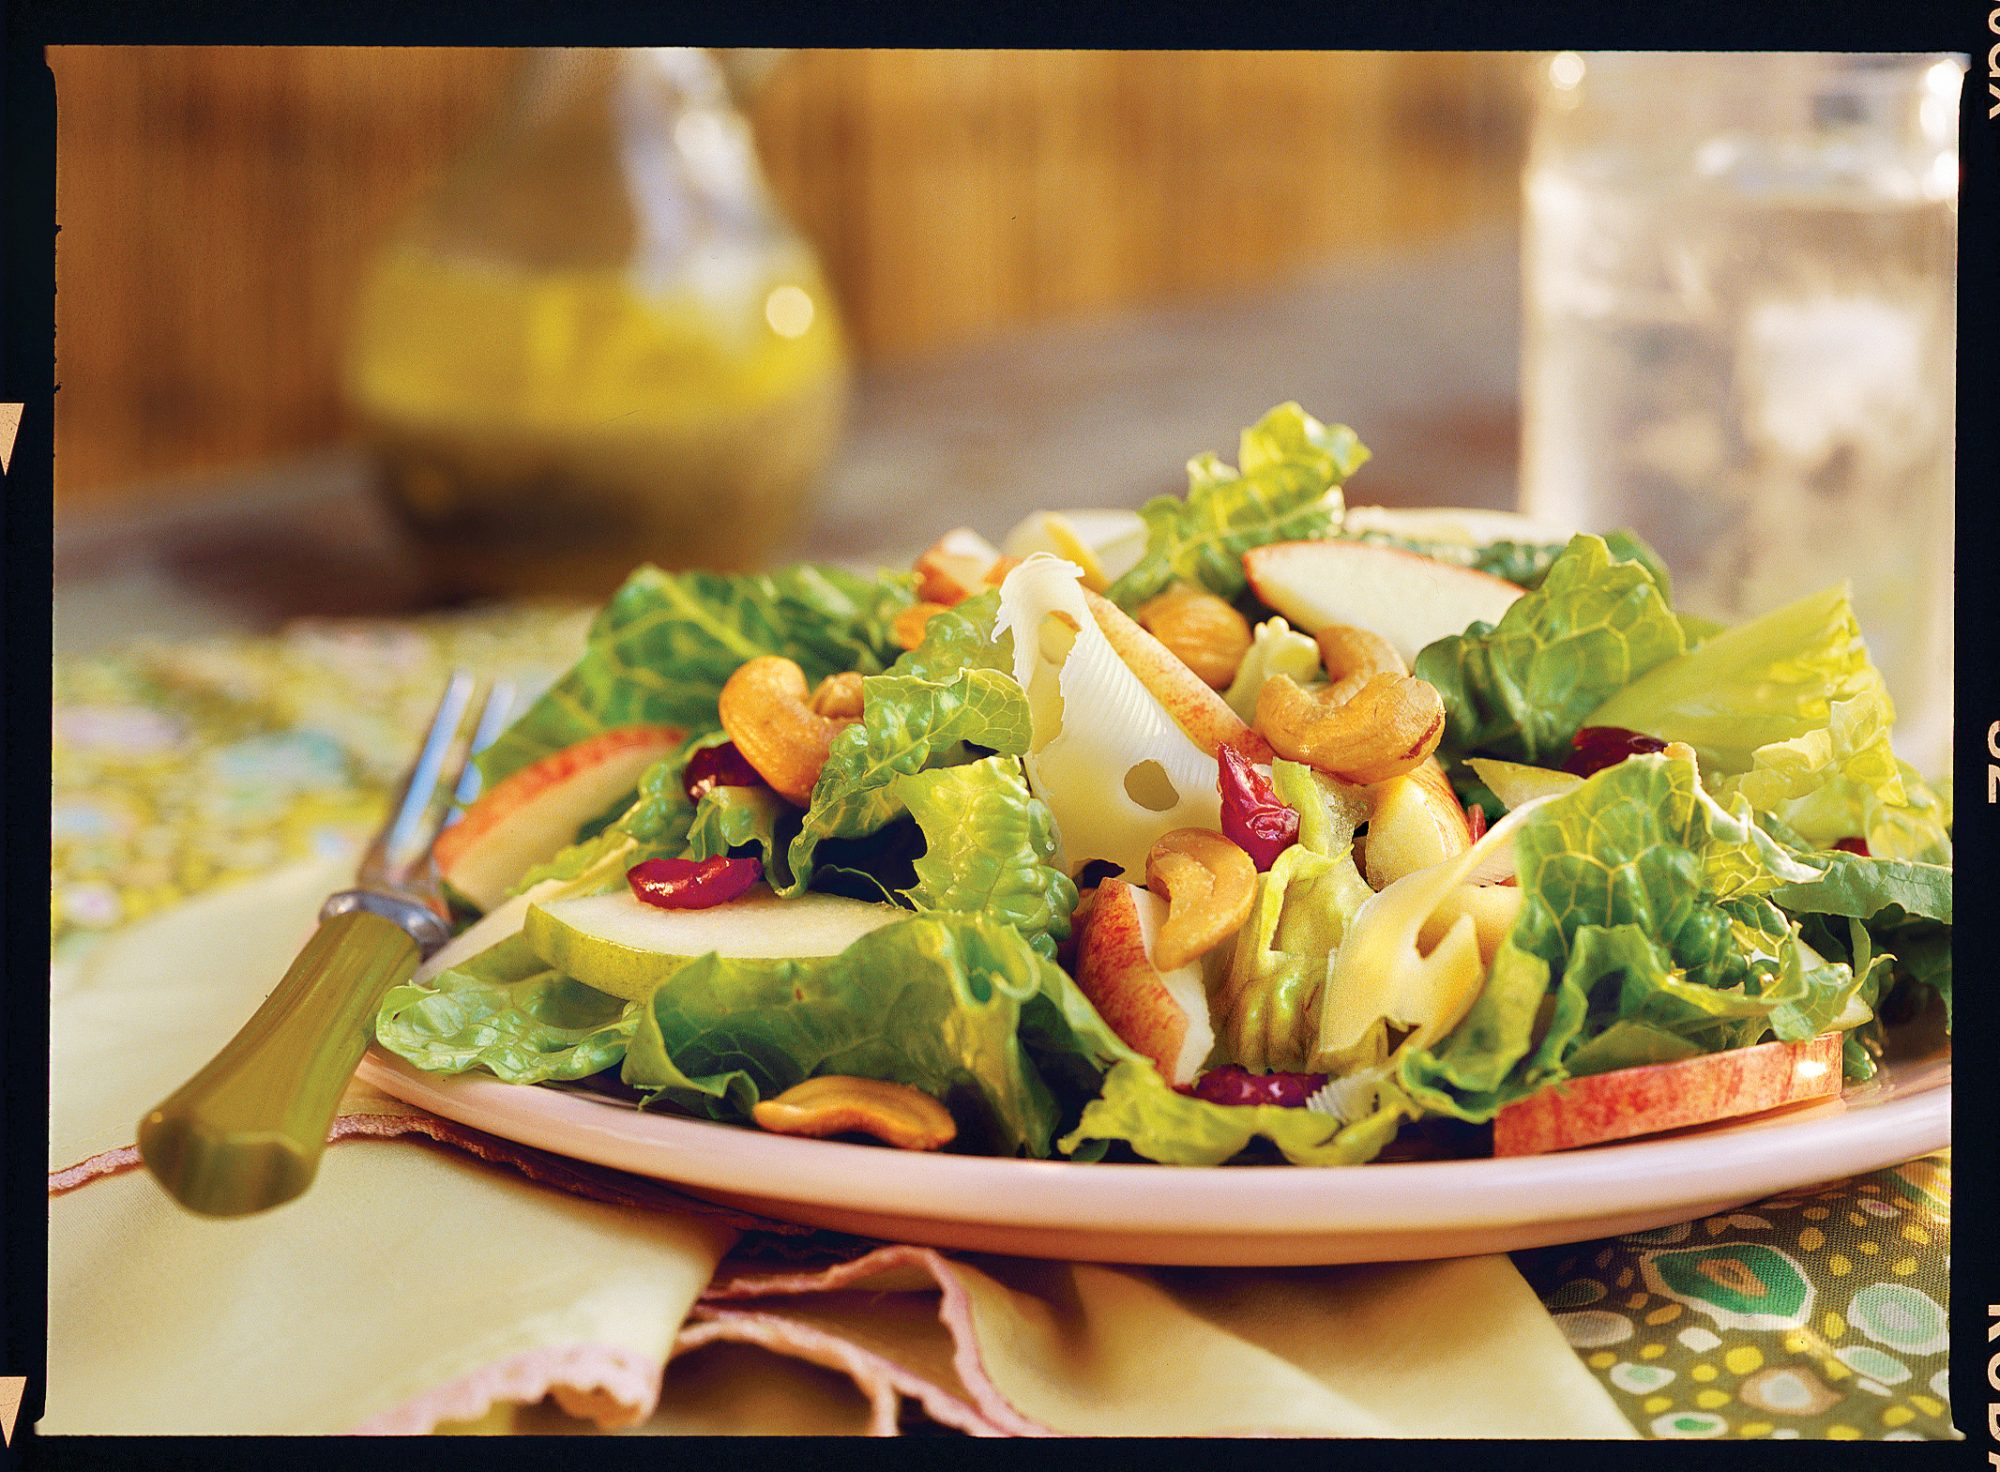 Apple-Pear Salad With Lemon-Poppy Seed Dressing